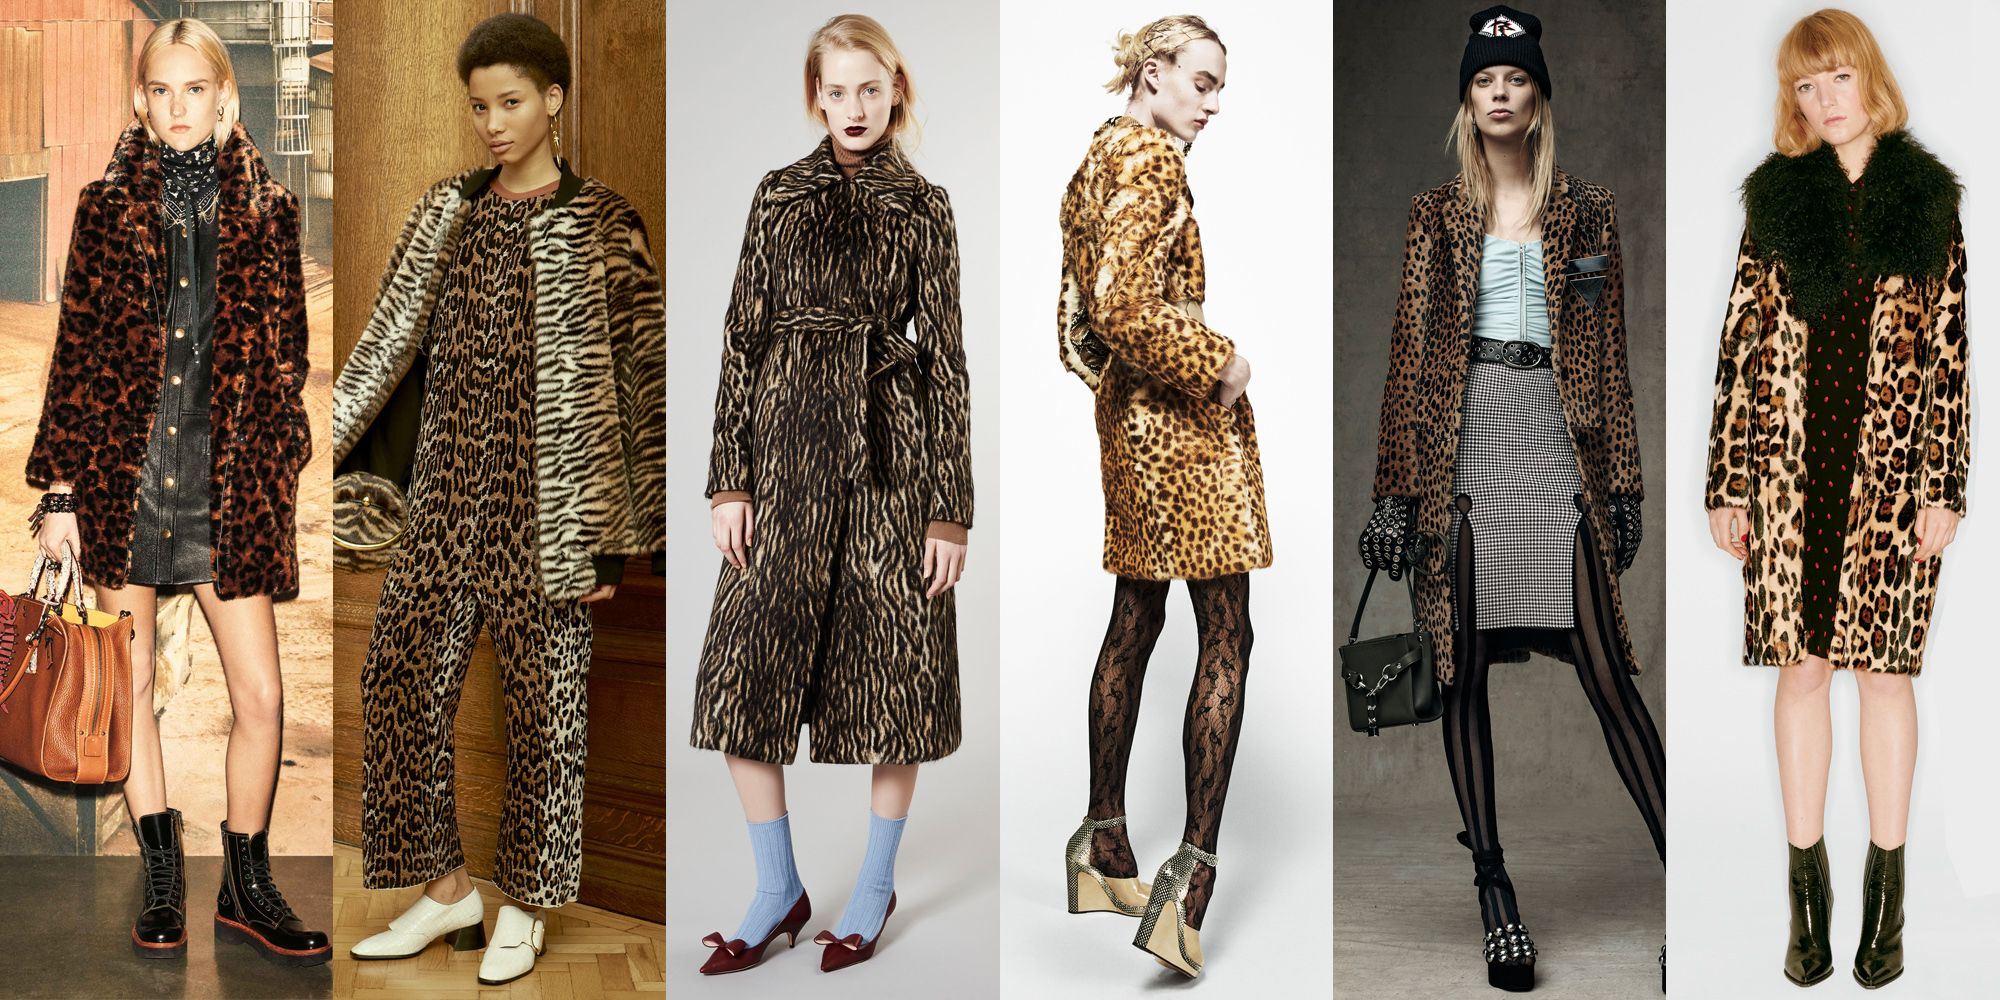 "<p>Leopard is never truly <span class=""redactor-invisible-space"">out, per se, but it came roaring back this season. The print made notable appearances at Alexander Wang, Coach and Sonia Rykiel. </span><br></p><p><span class=""redactor-invisible-space""><br></span></p><p><em>Left to Right: Coach, Stella McCartney, Rochas, Alexander Wang, Sonia Rykiel</em></p>"